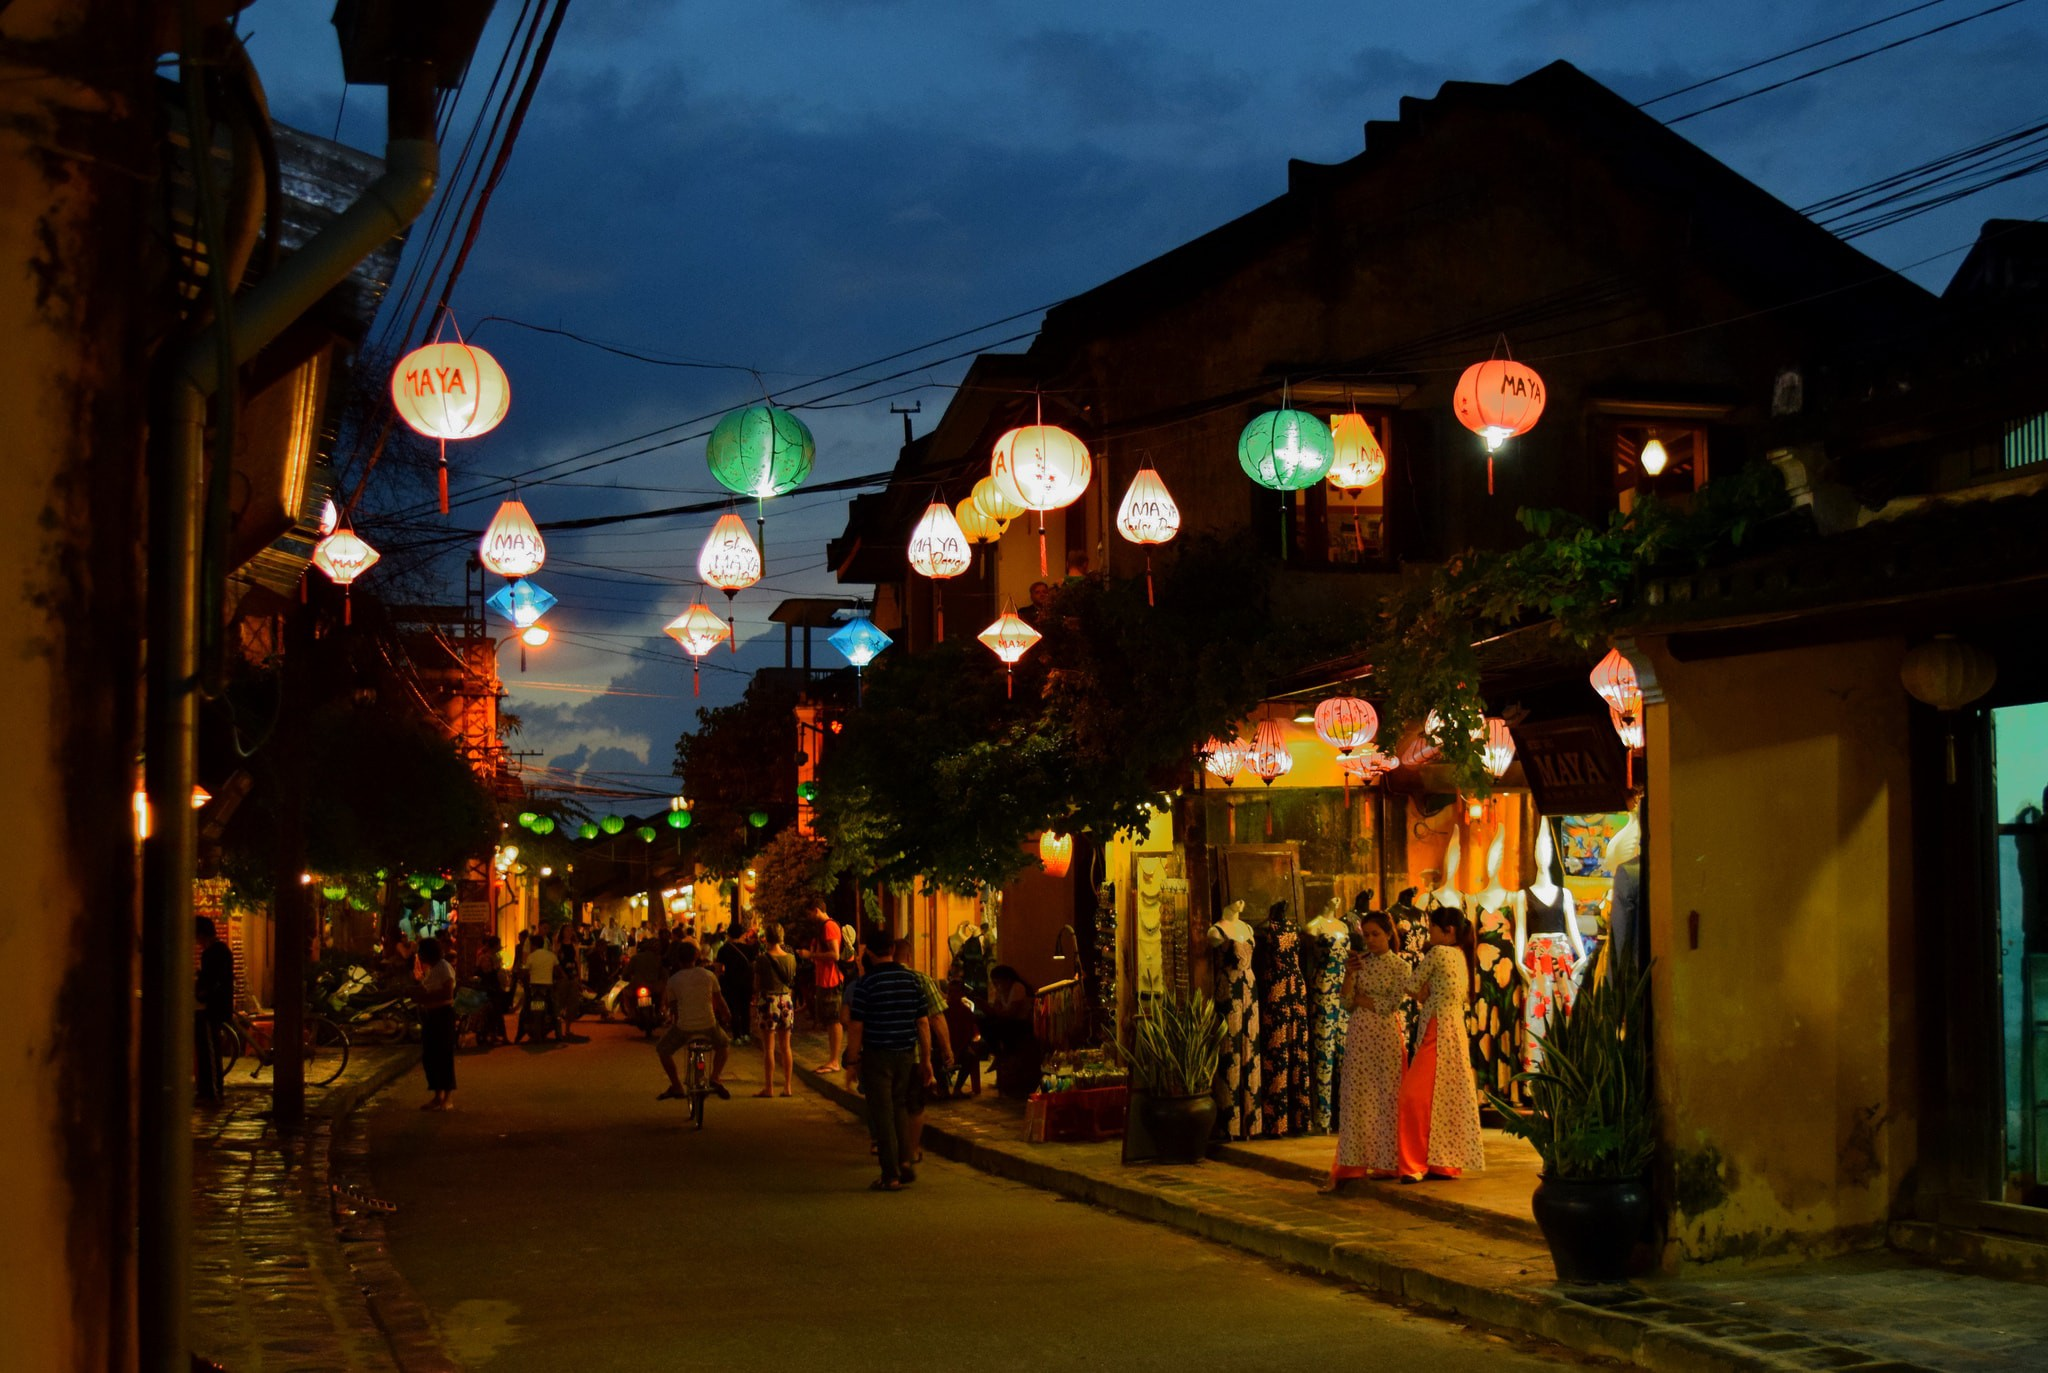 Hoi An streets   © lire100/Flickr